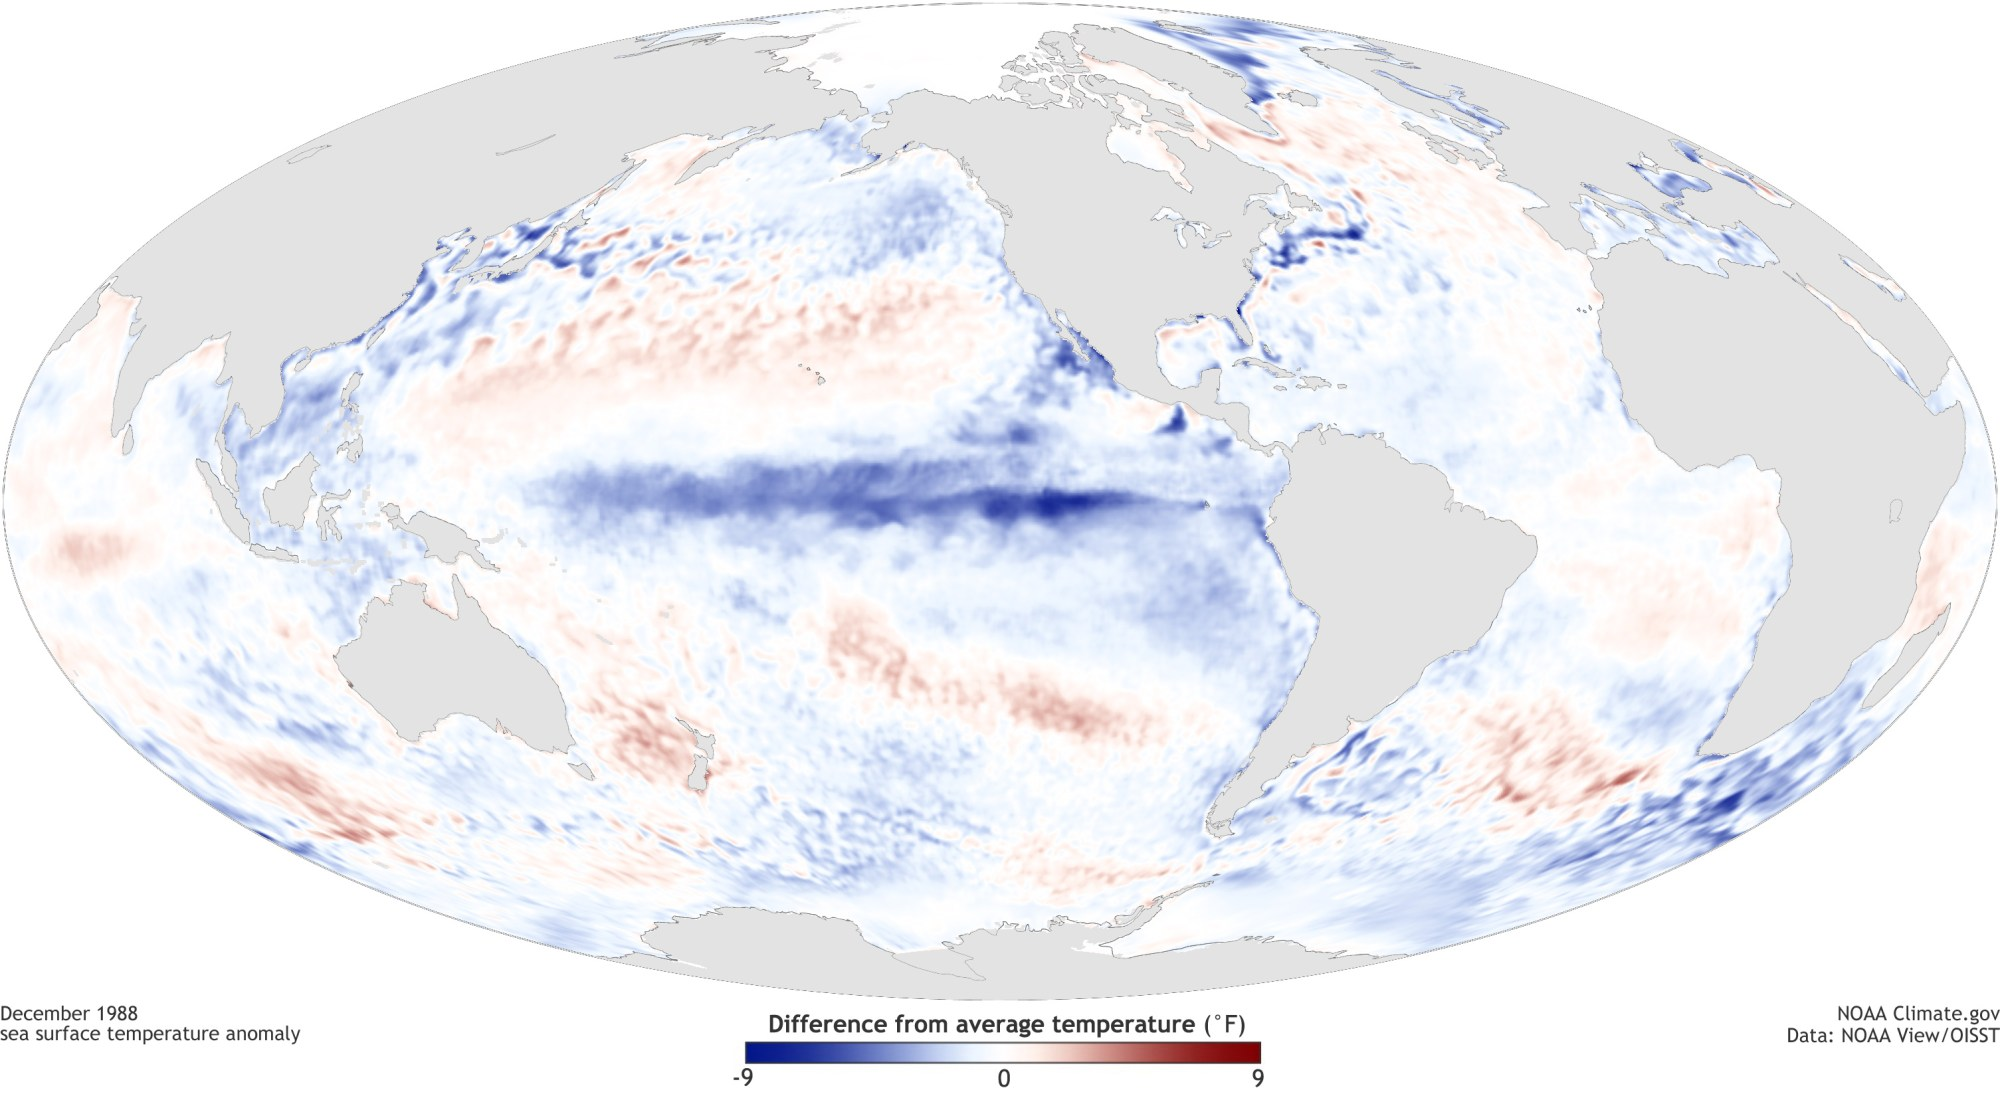 hight resolution of  pacific ocean during a strong la ni a top december 1988 and el ni o bottom december 1997 maps by noaa climate gov based on data provided by noaa